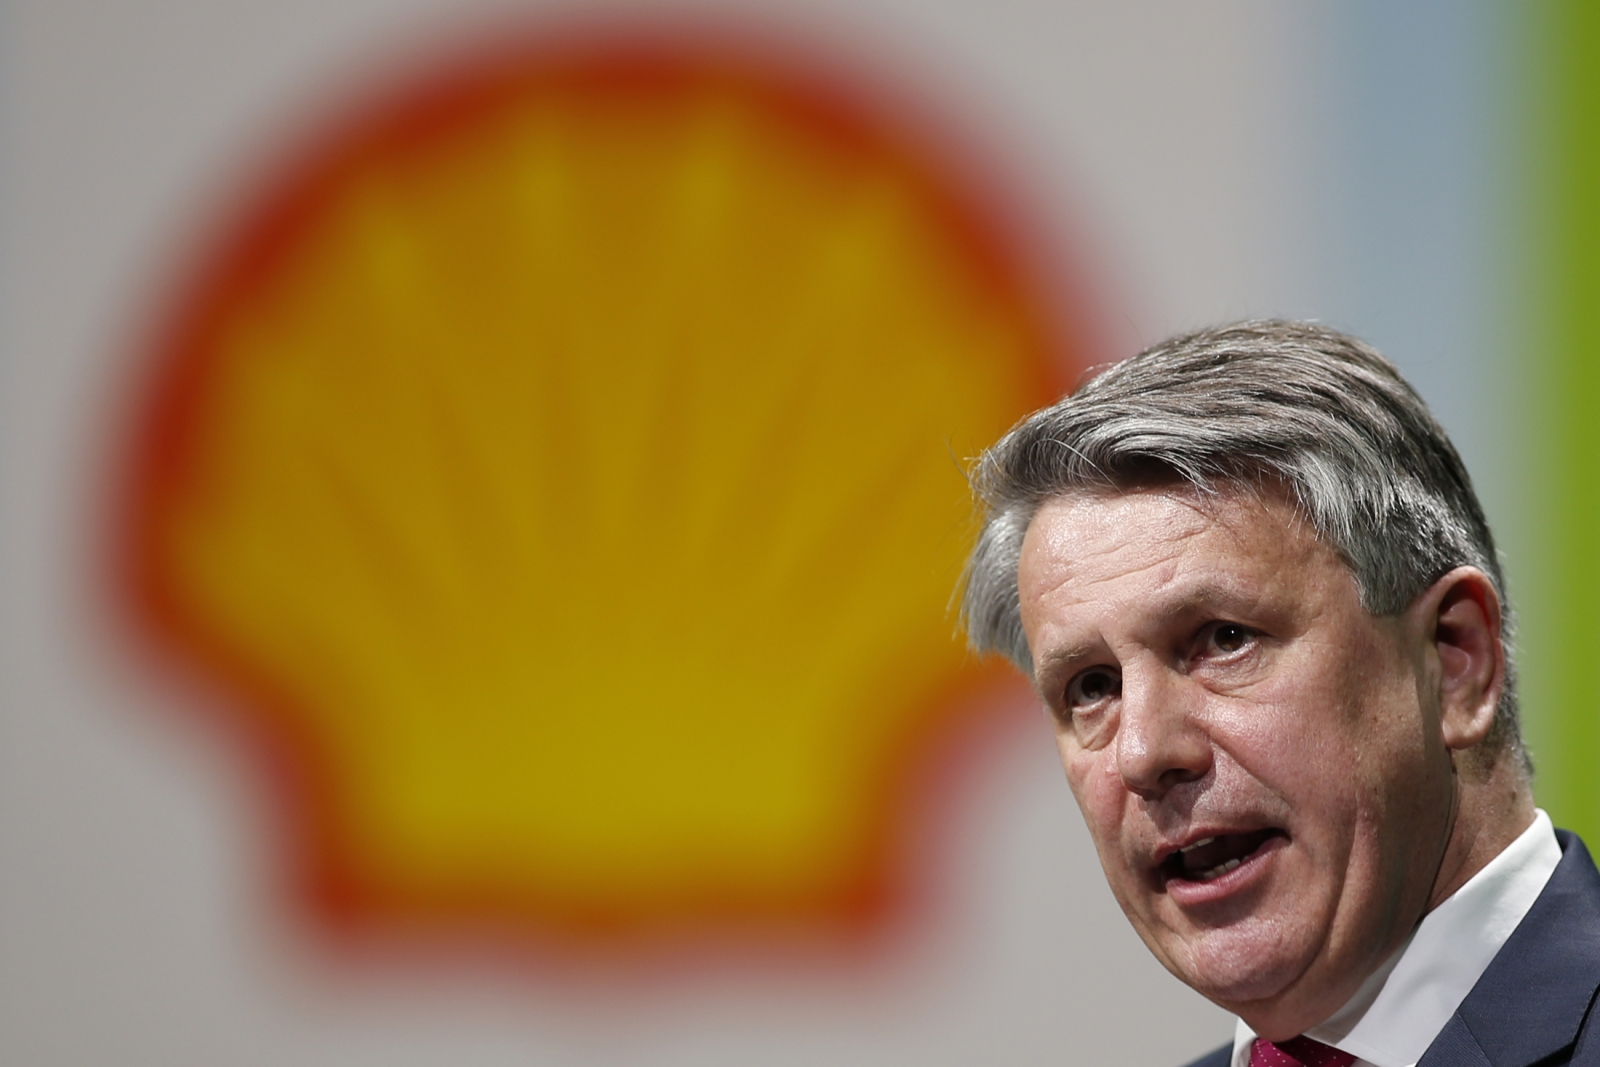 Royal Dutch Shell raises US$7.2bn from Canadian oil sands disposal